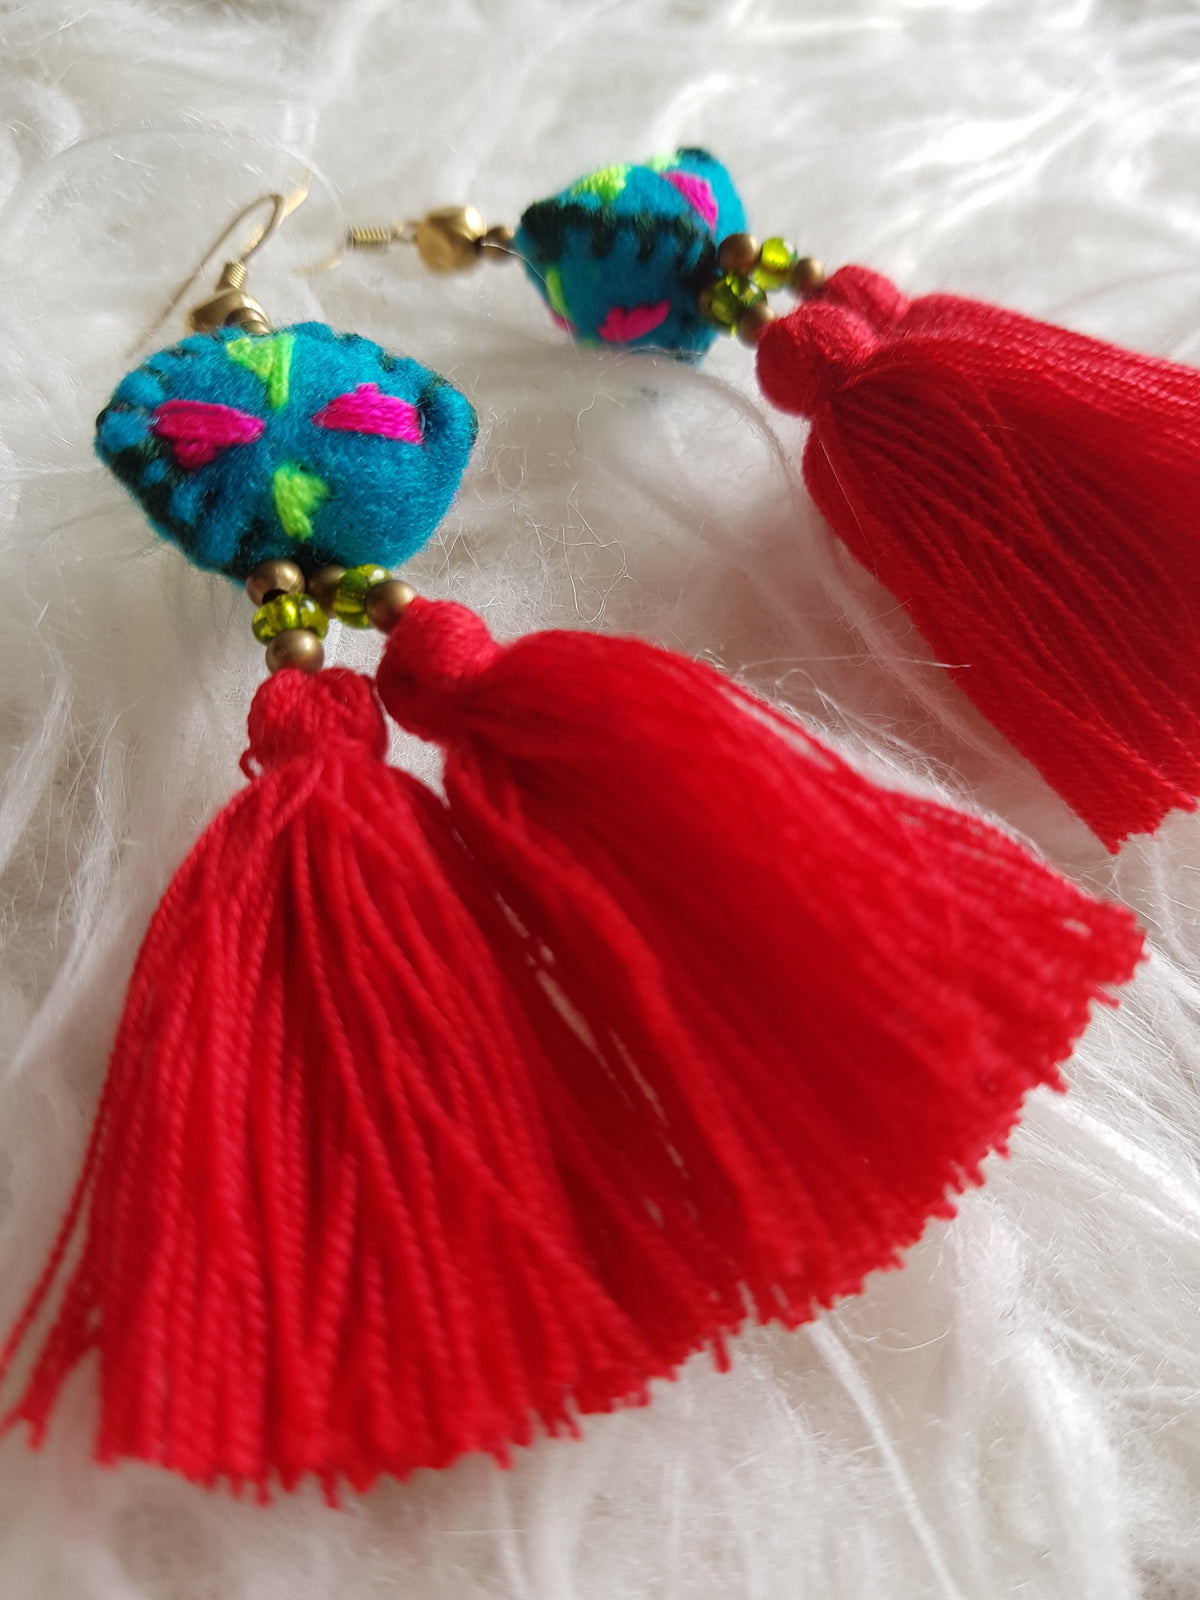 Tira Embroidered Earrings (Red Tassels with Blue Felt)